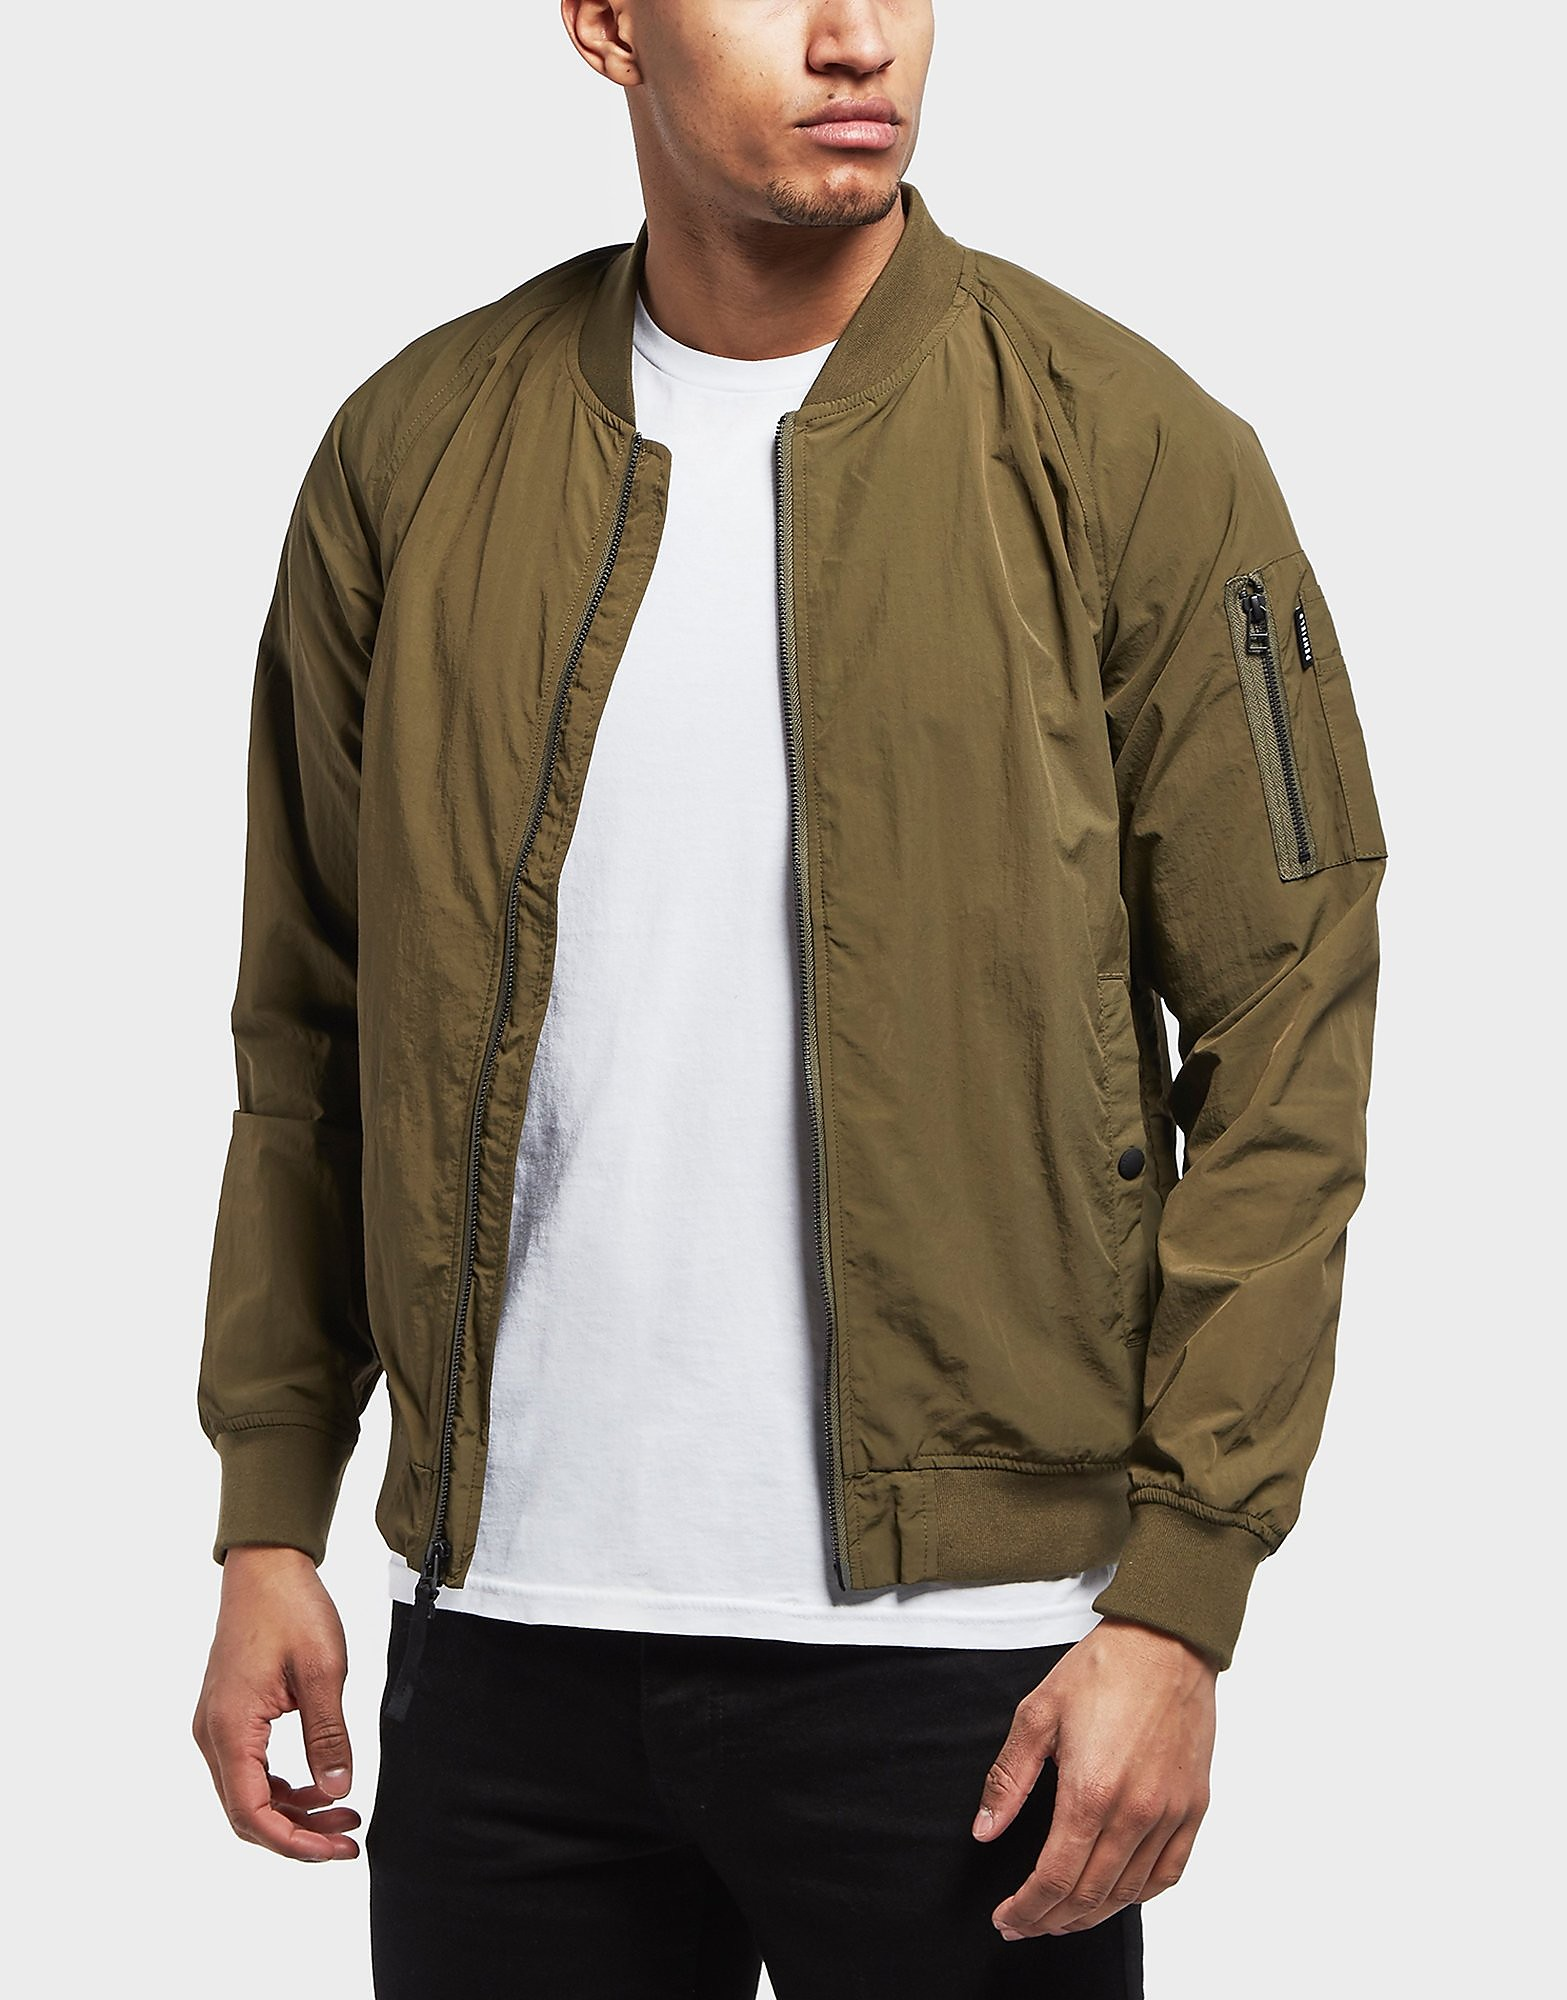 Penfield Okenfield Lightweight Bomber Jacket